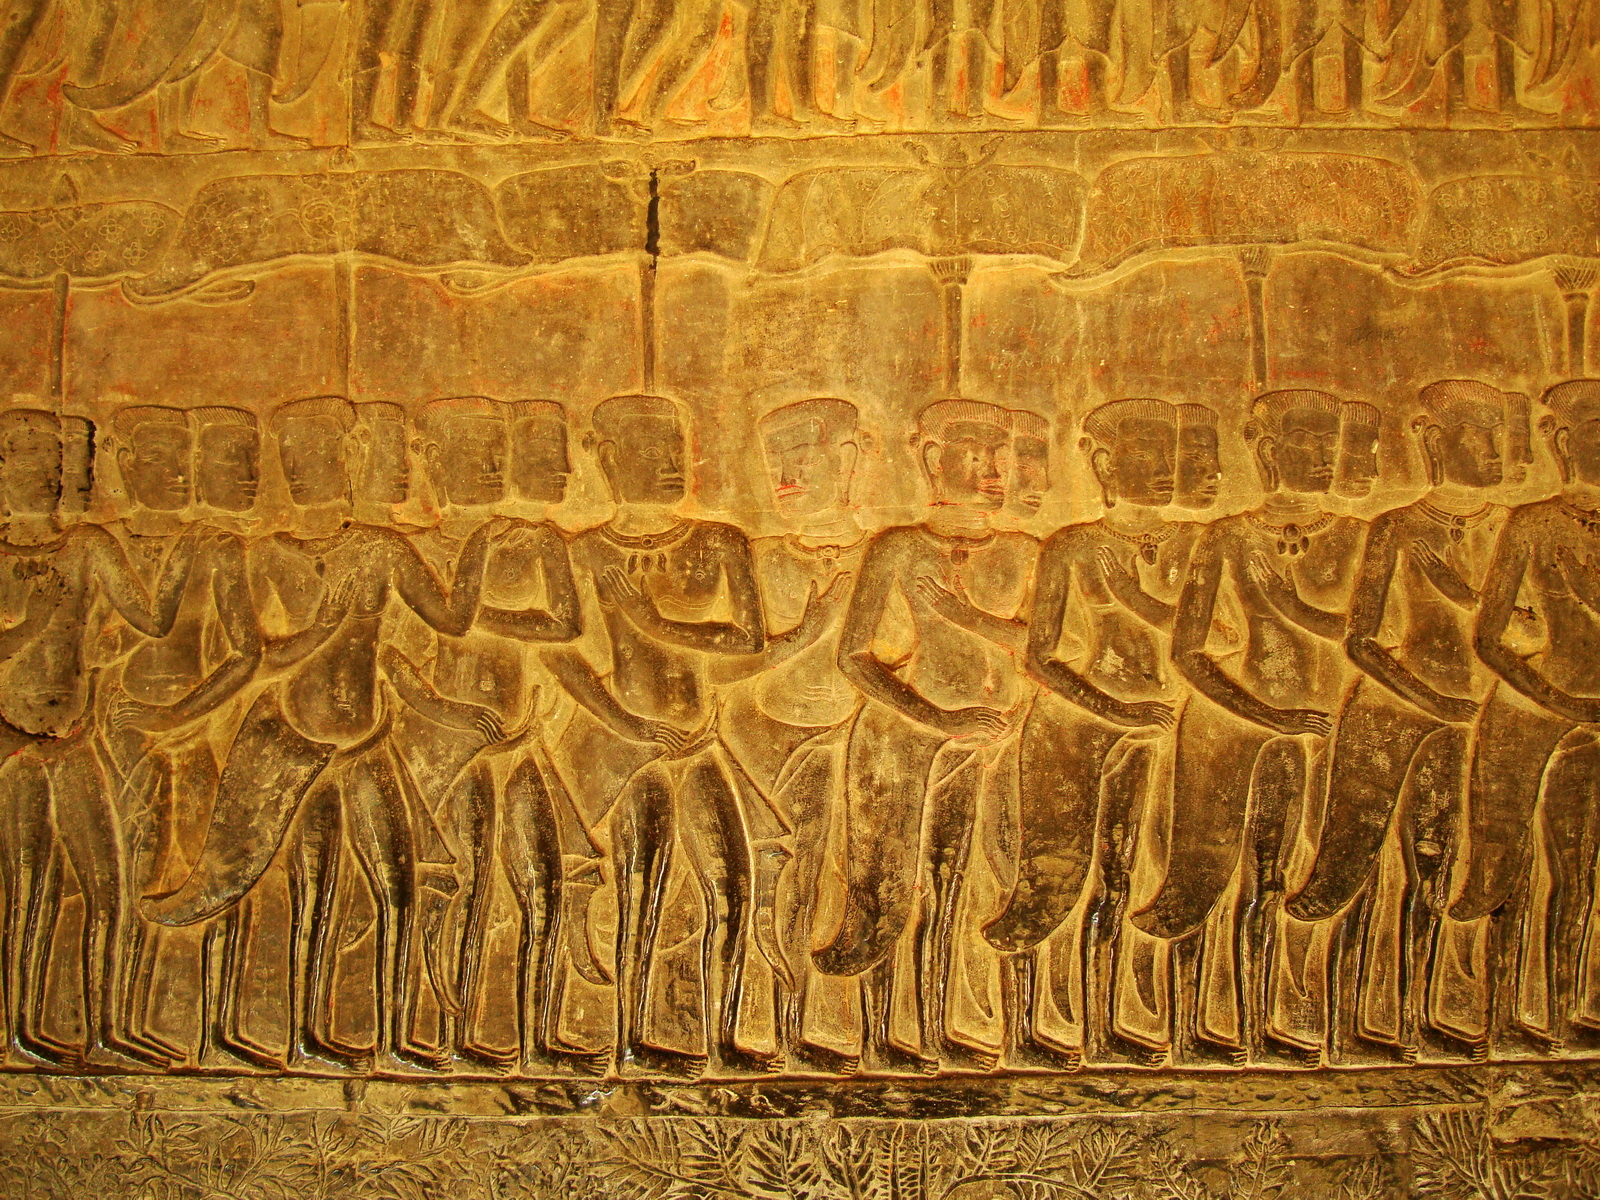 Angkor Wat Bas relief S Gallery E Wing Heavens and Hells 22